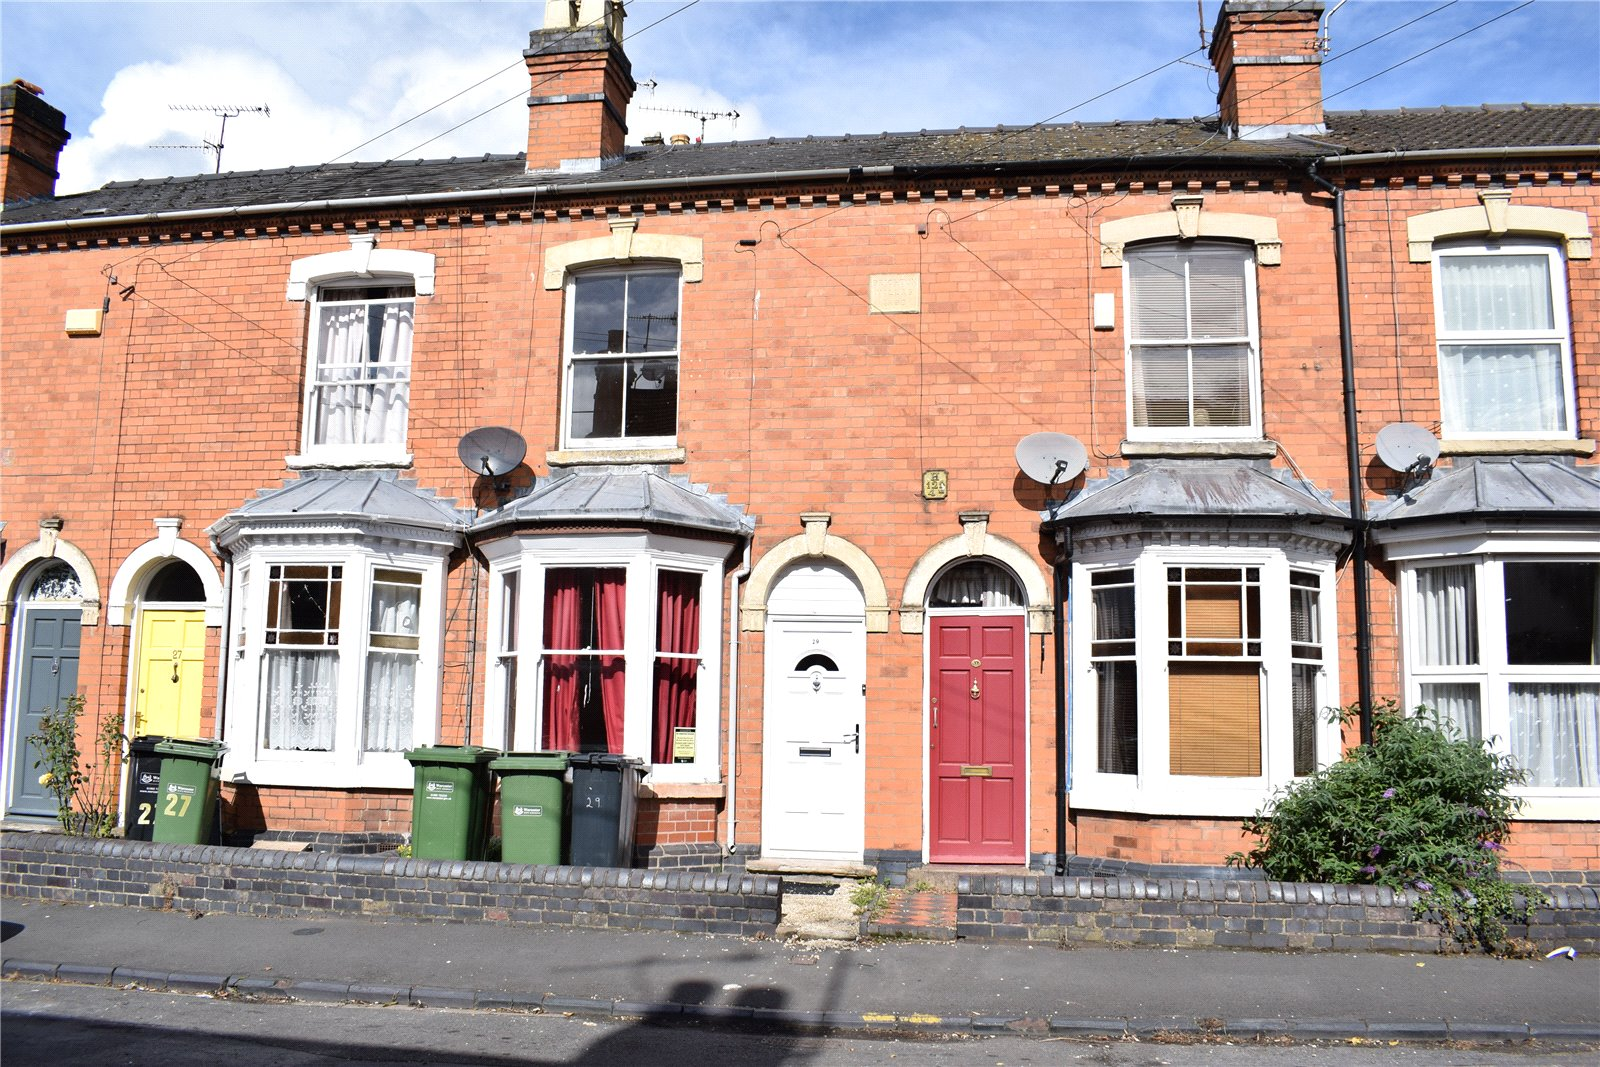 29 Barry Street, Worcester, Worcestershire, WR1